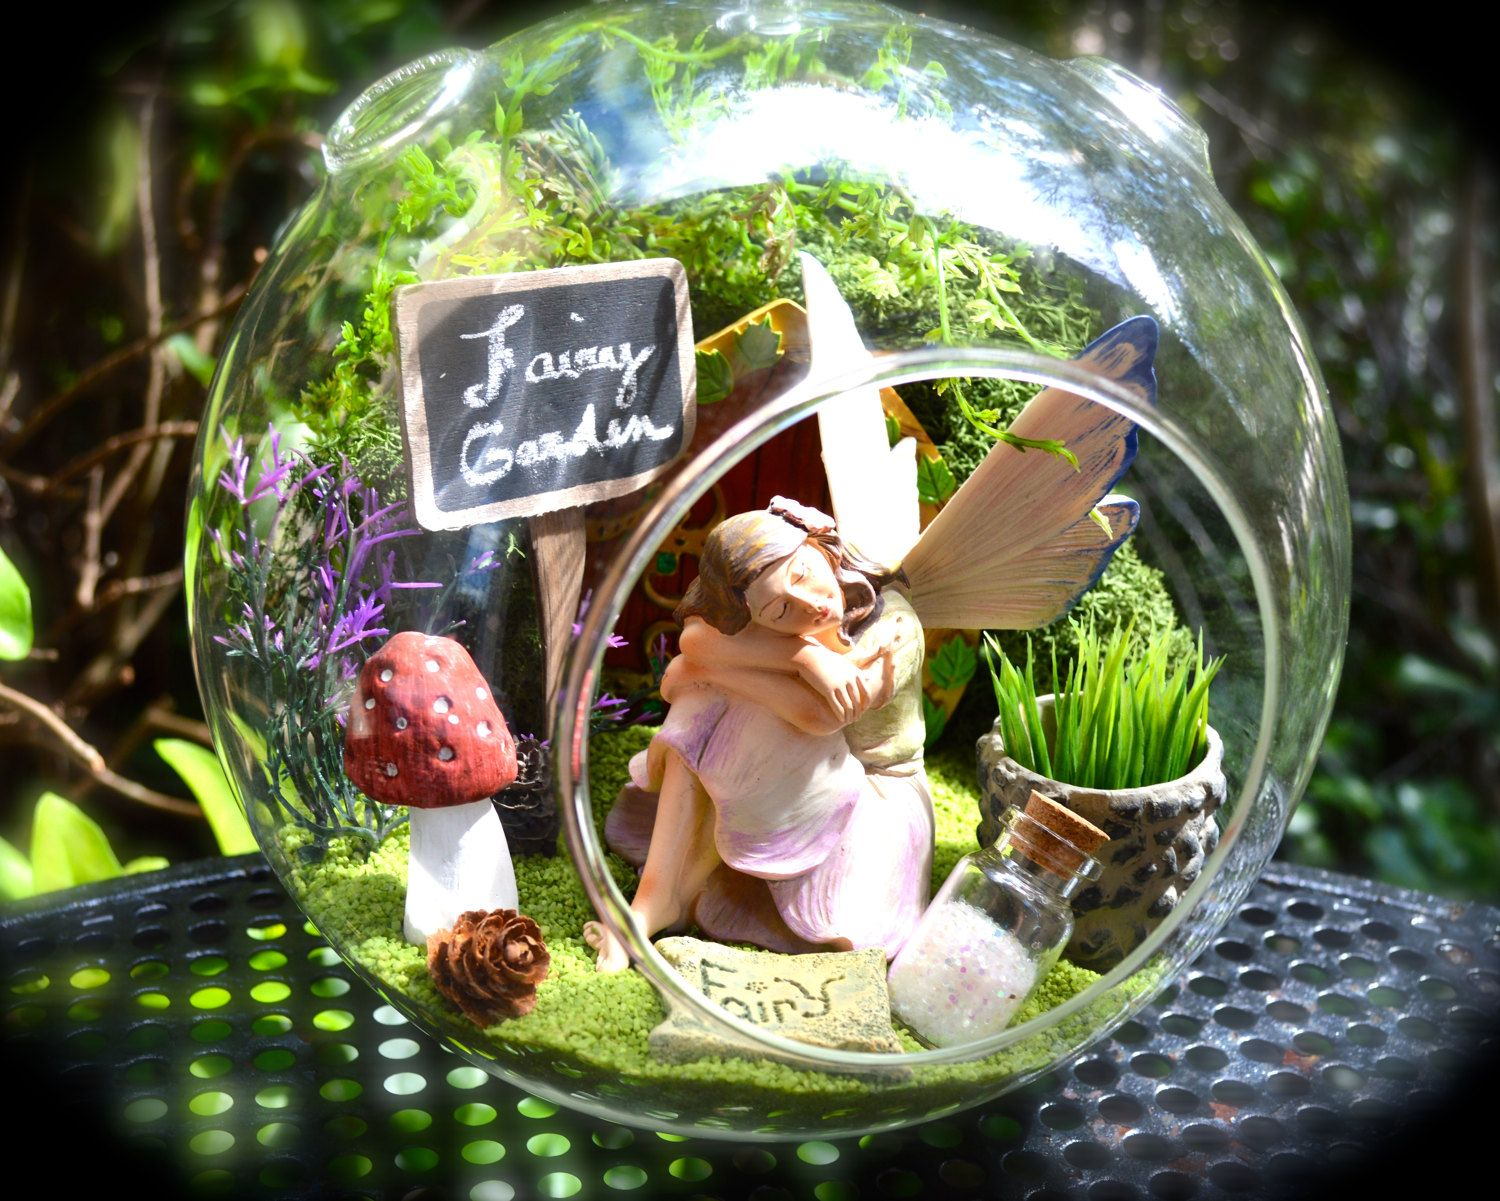 fairy garden terrarium 8 glass globe beautiful fairy in enchanted garden lichen moss mushroom fairy door sign gift idea by - Fairy Garden Terrarium